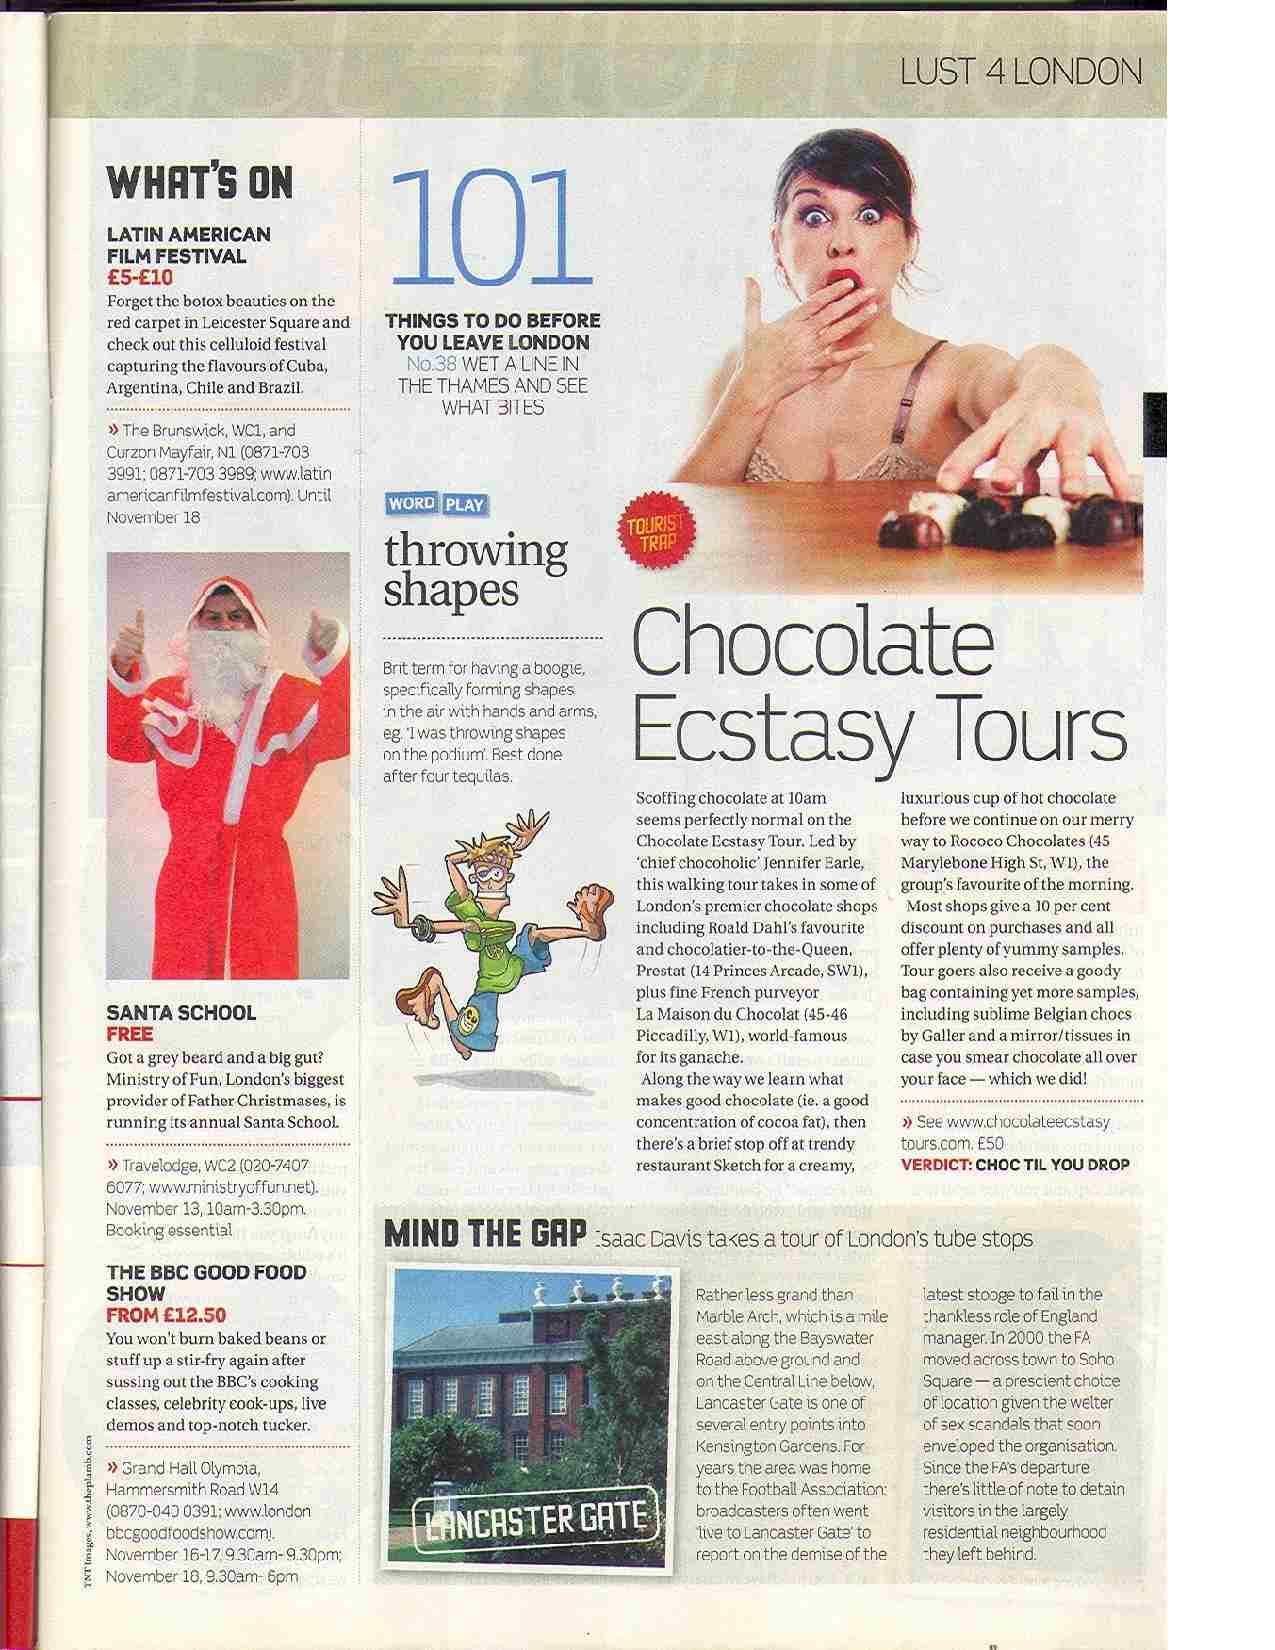 Chocolate Ecstasy Tours in the News